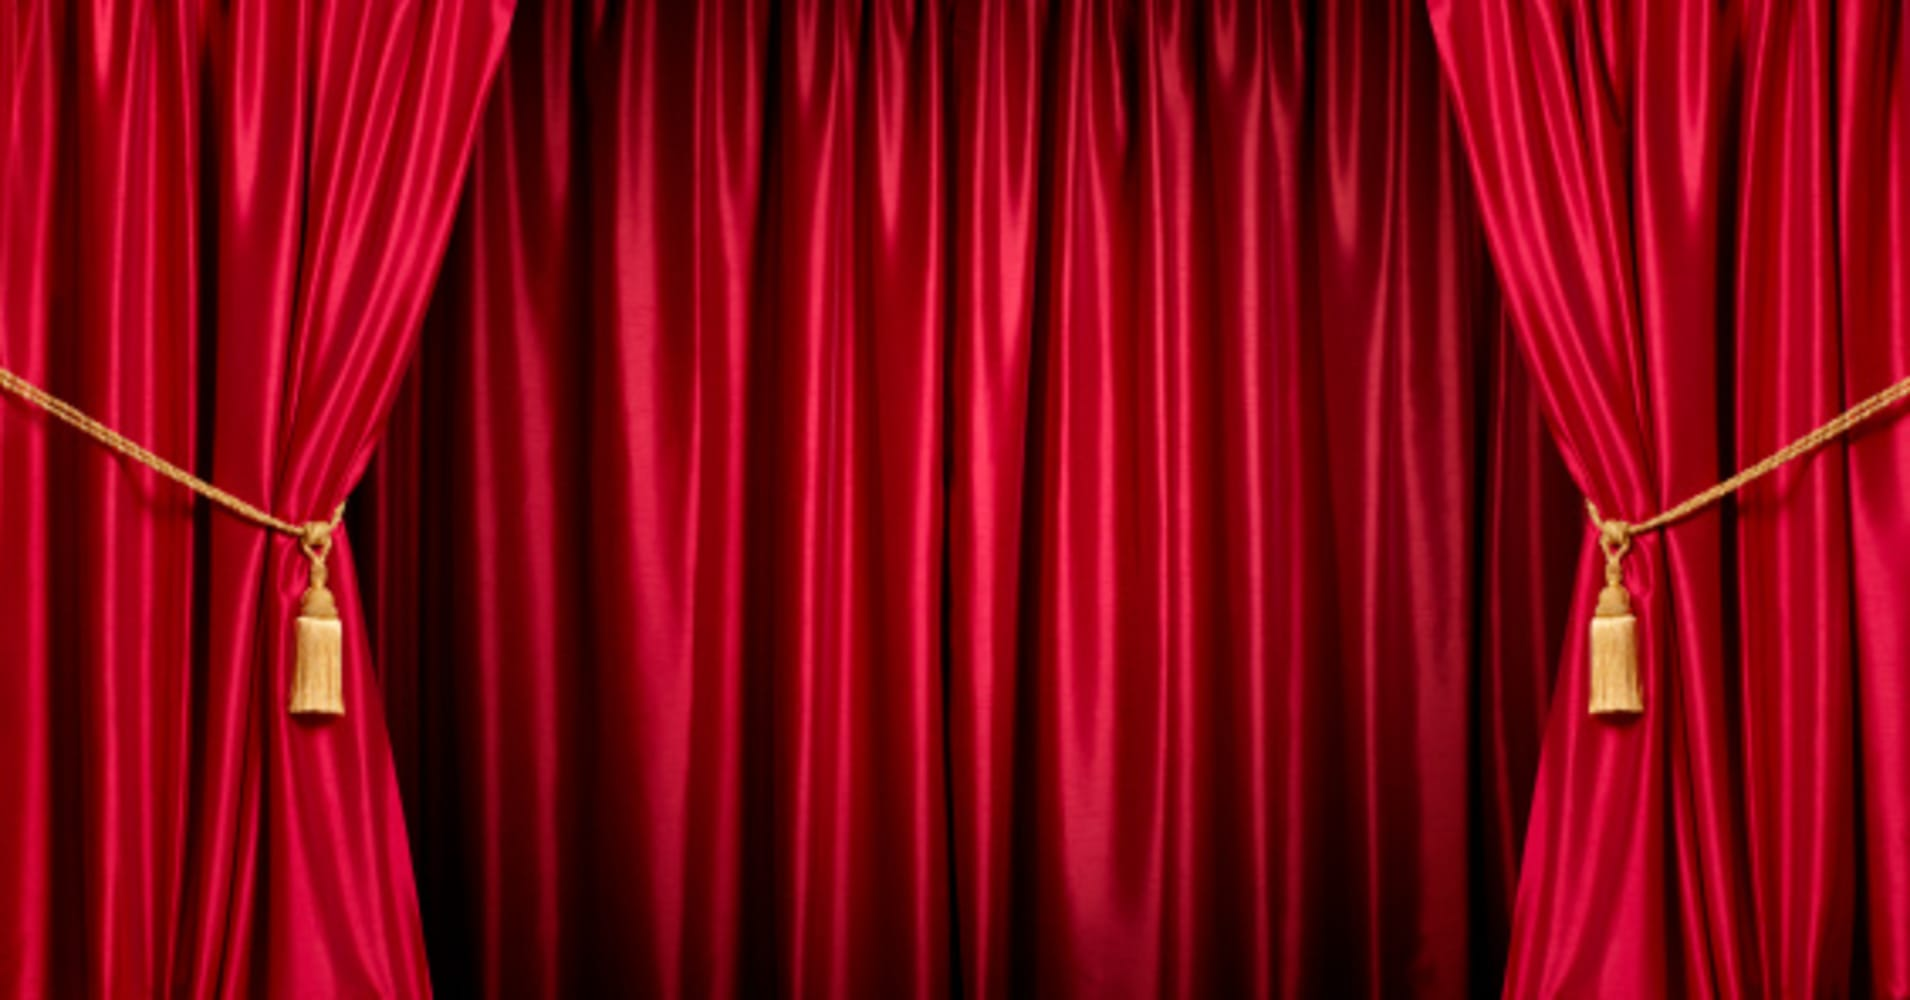 3d Animated Gif Wallpaper For Mobile Curtain Rising On Theater Investment